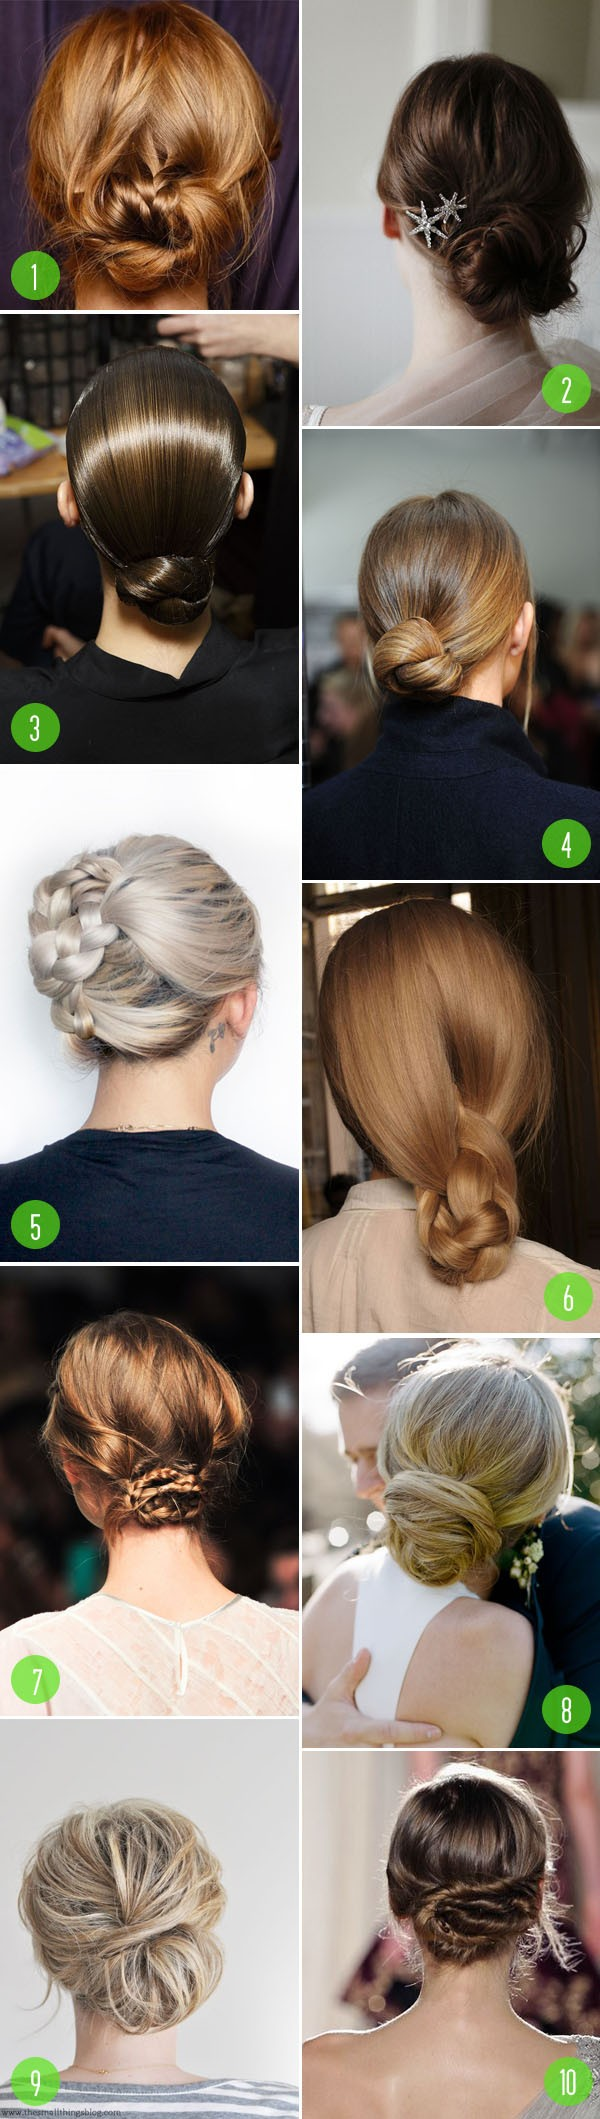 top 10: hair - chignons